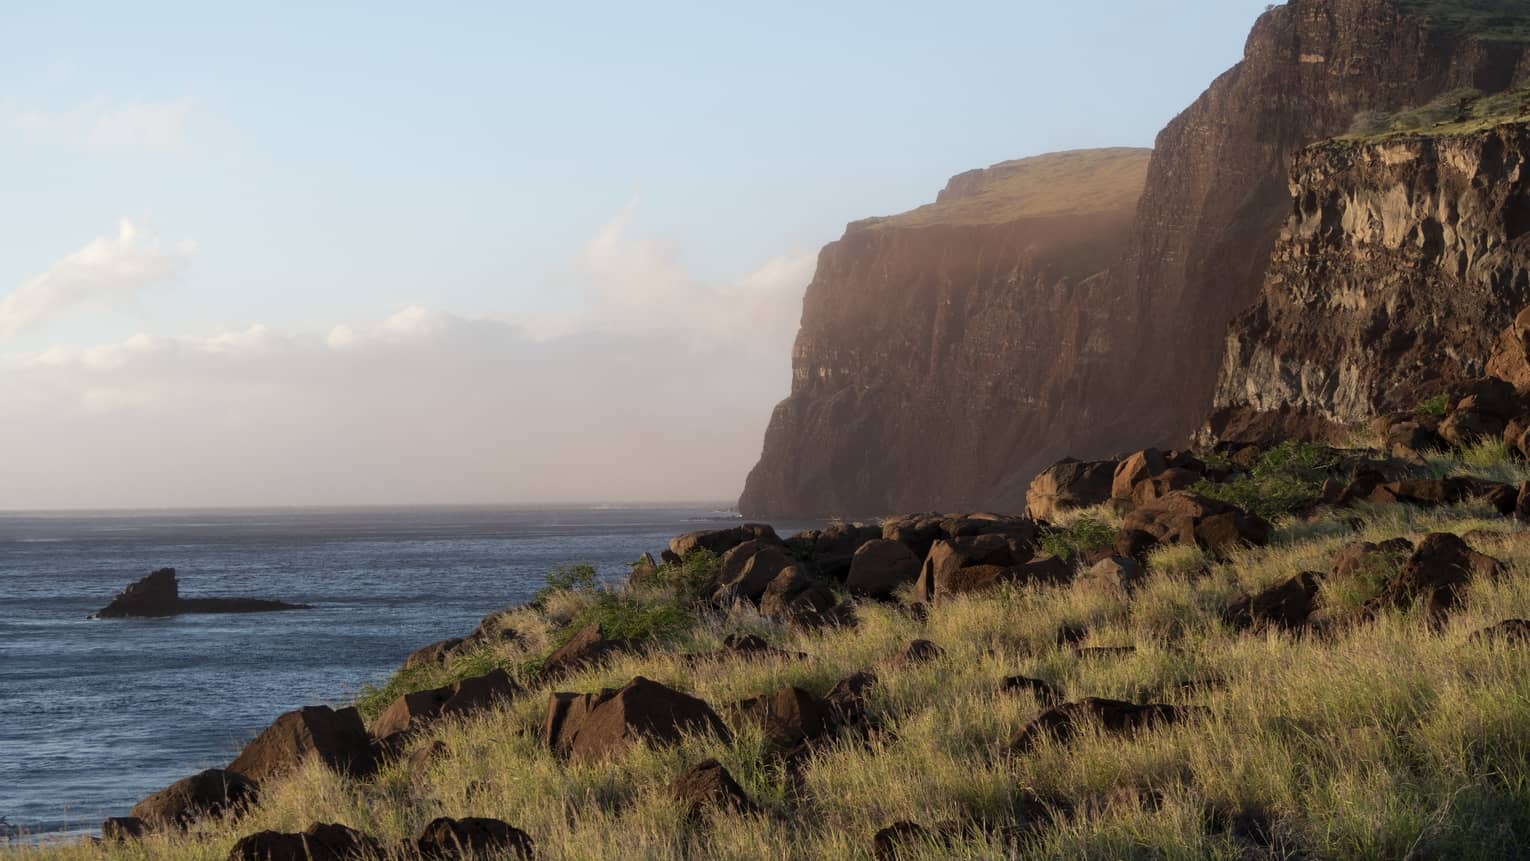 Cliffs, grass over ocean along rugged Lanai, Hawaii coastline